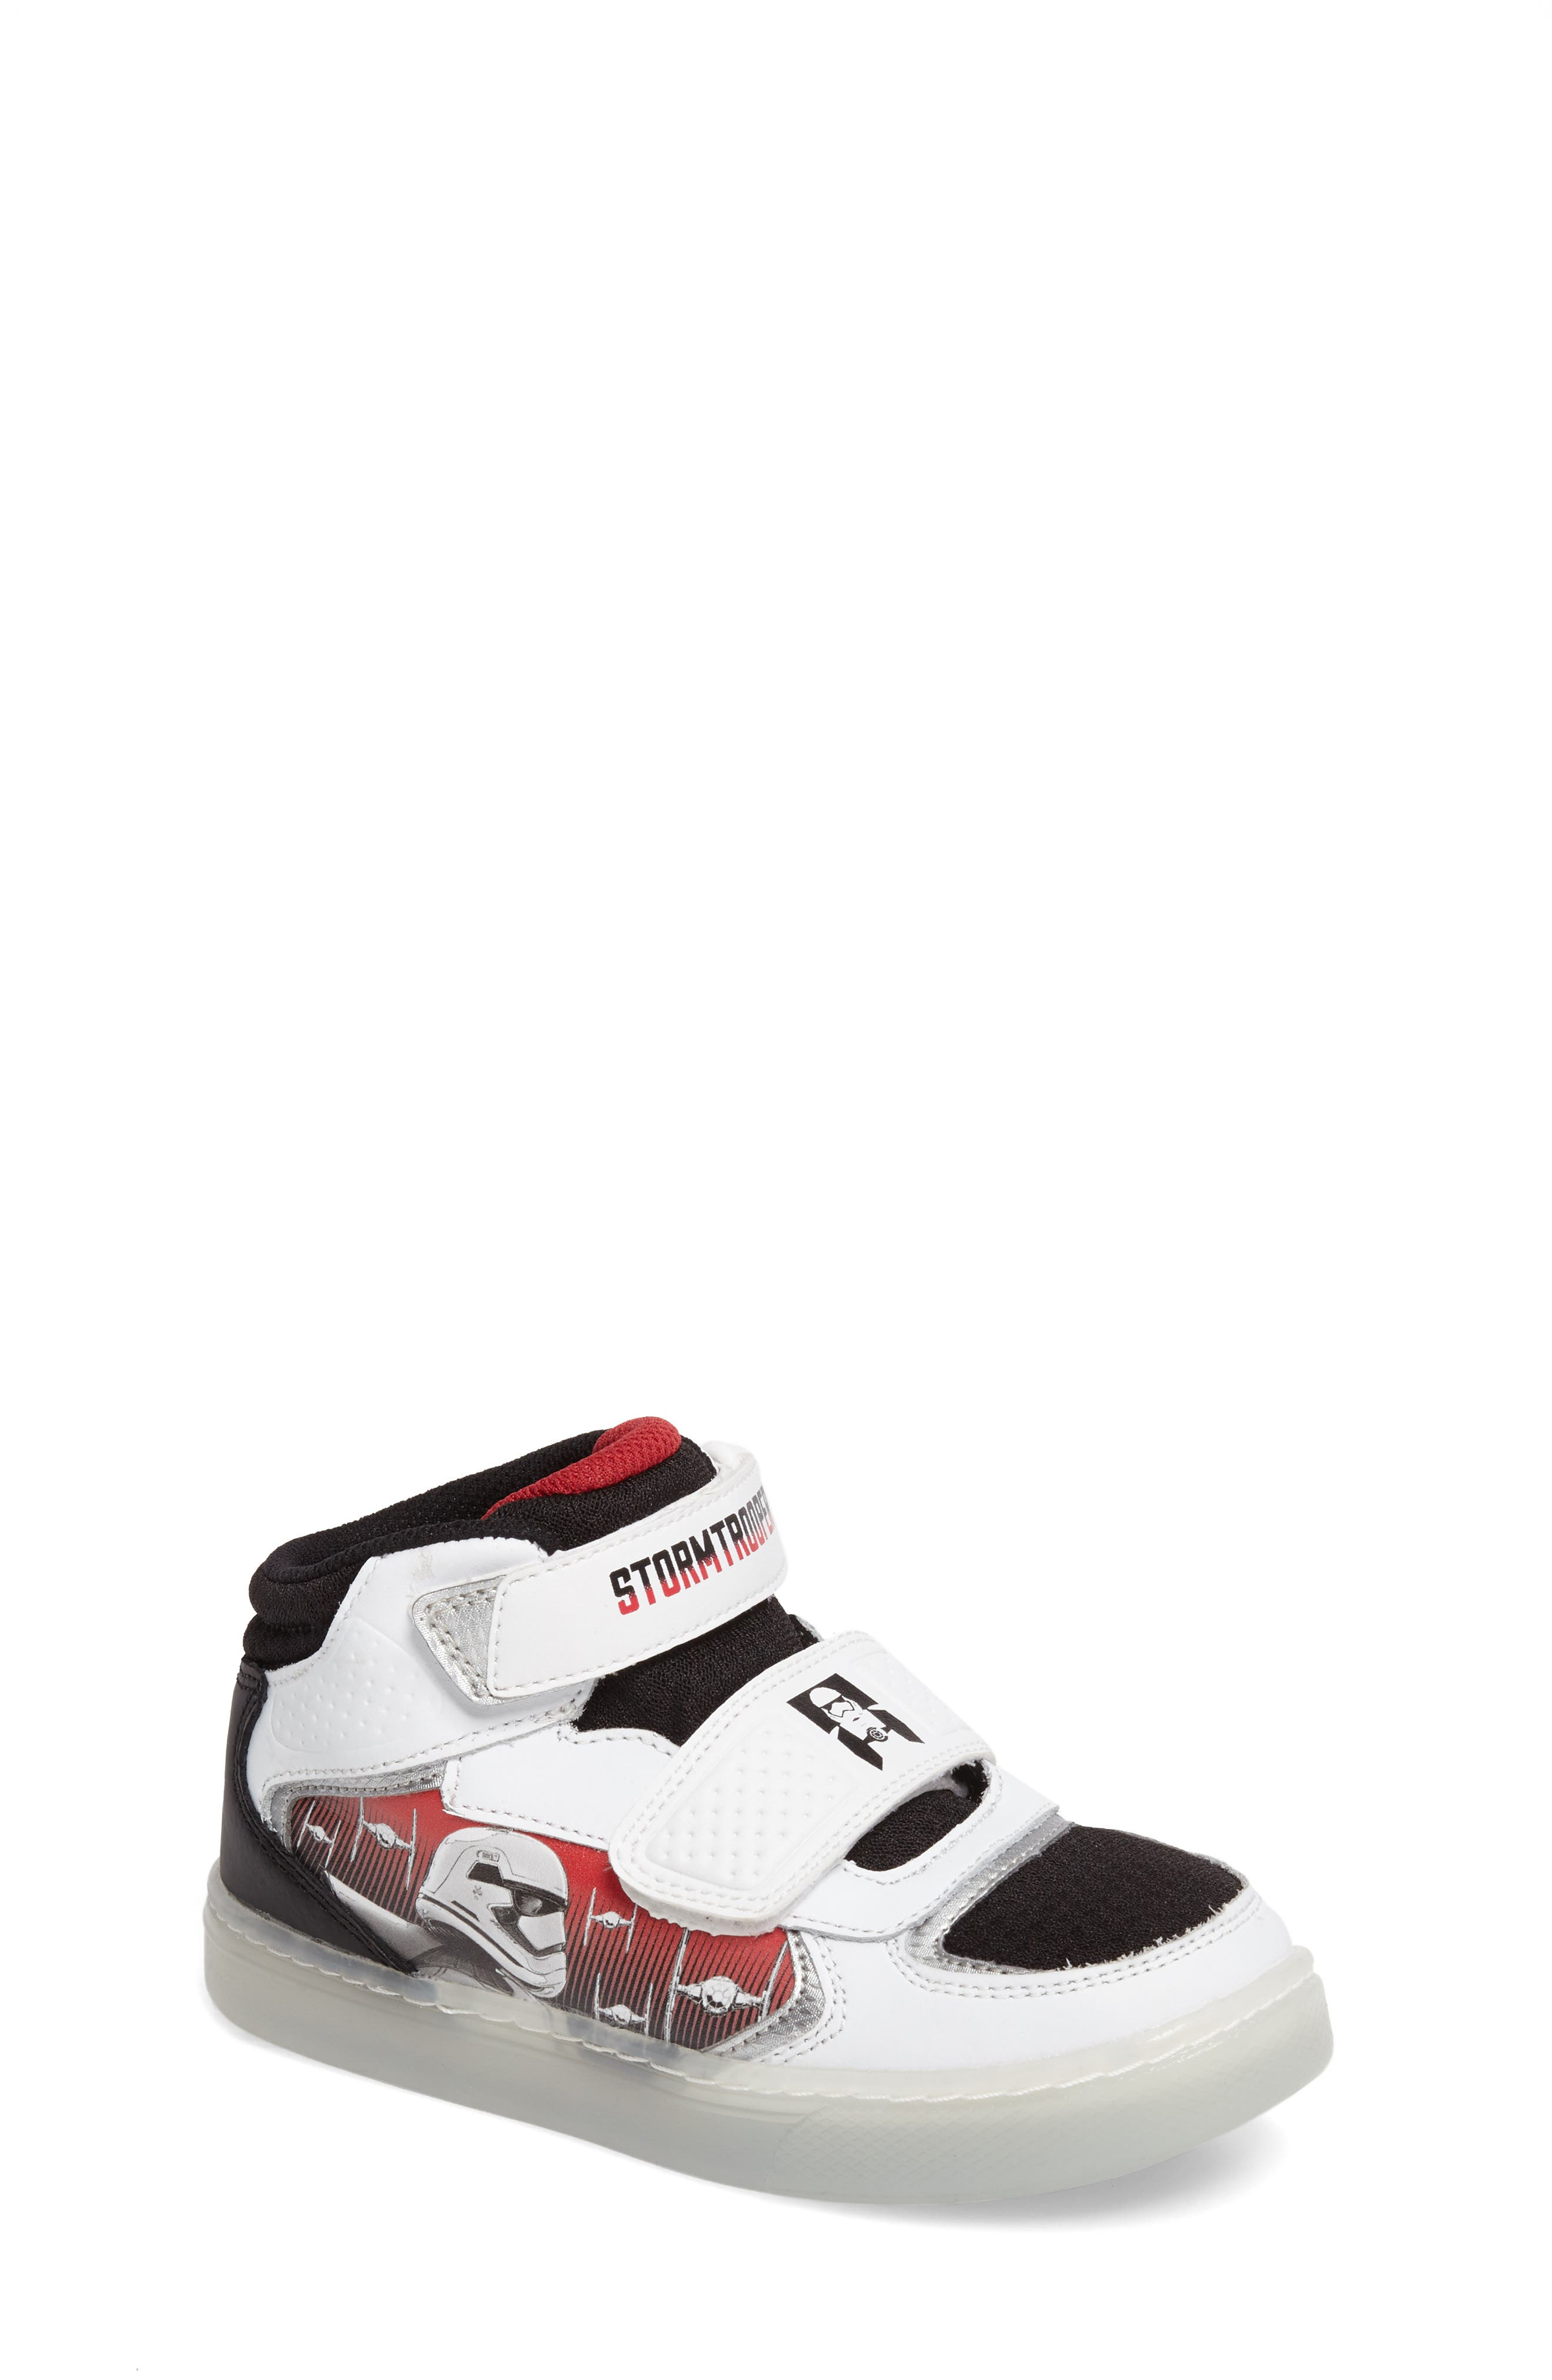 Main Image - Stride Rite Star Wars® Stormtropper Galaxy Light-Up Sneaker (Toddler & Little Kid)